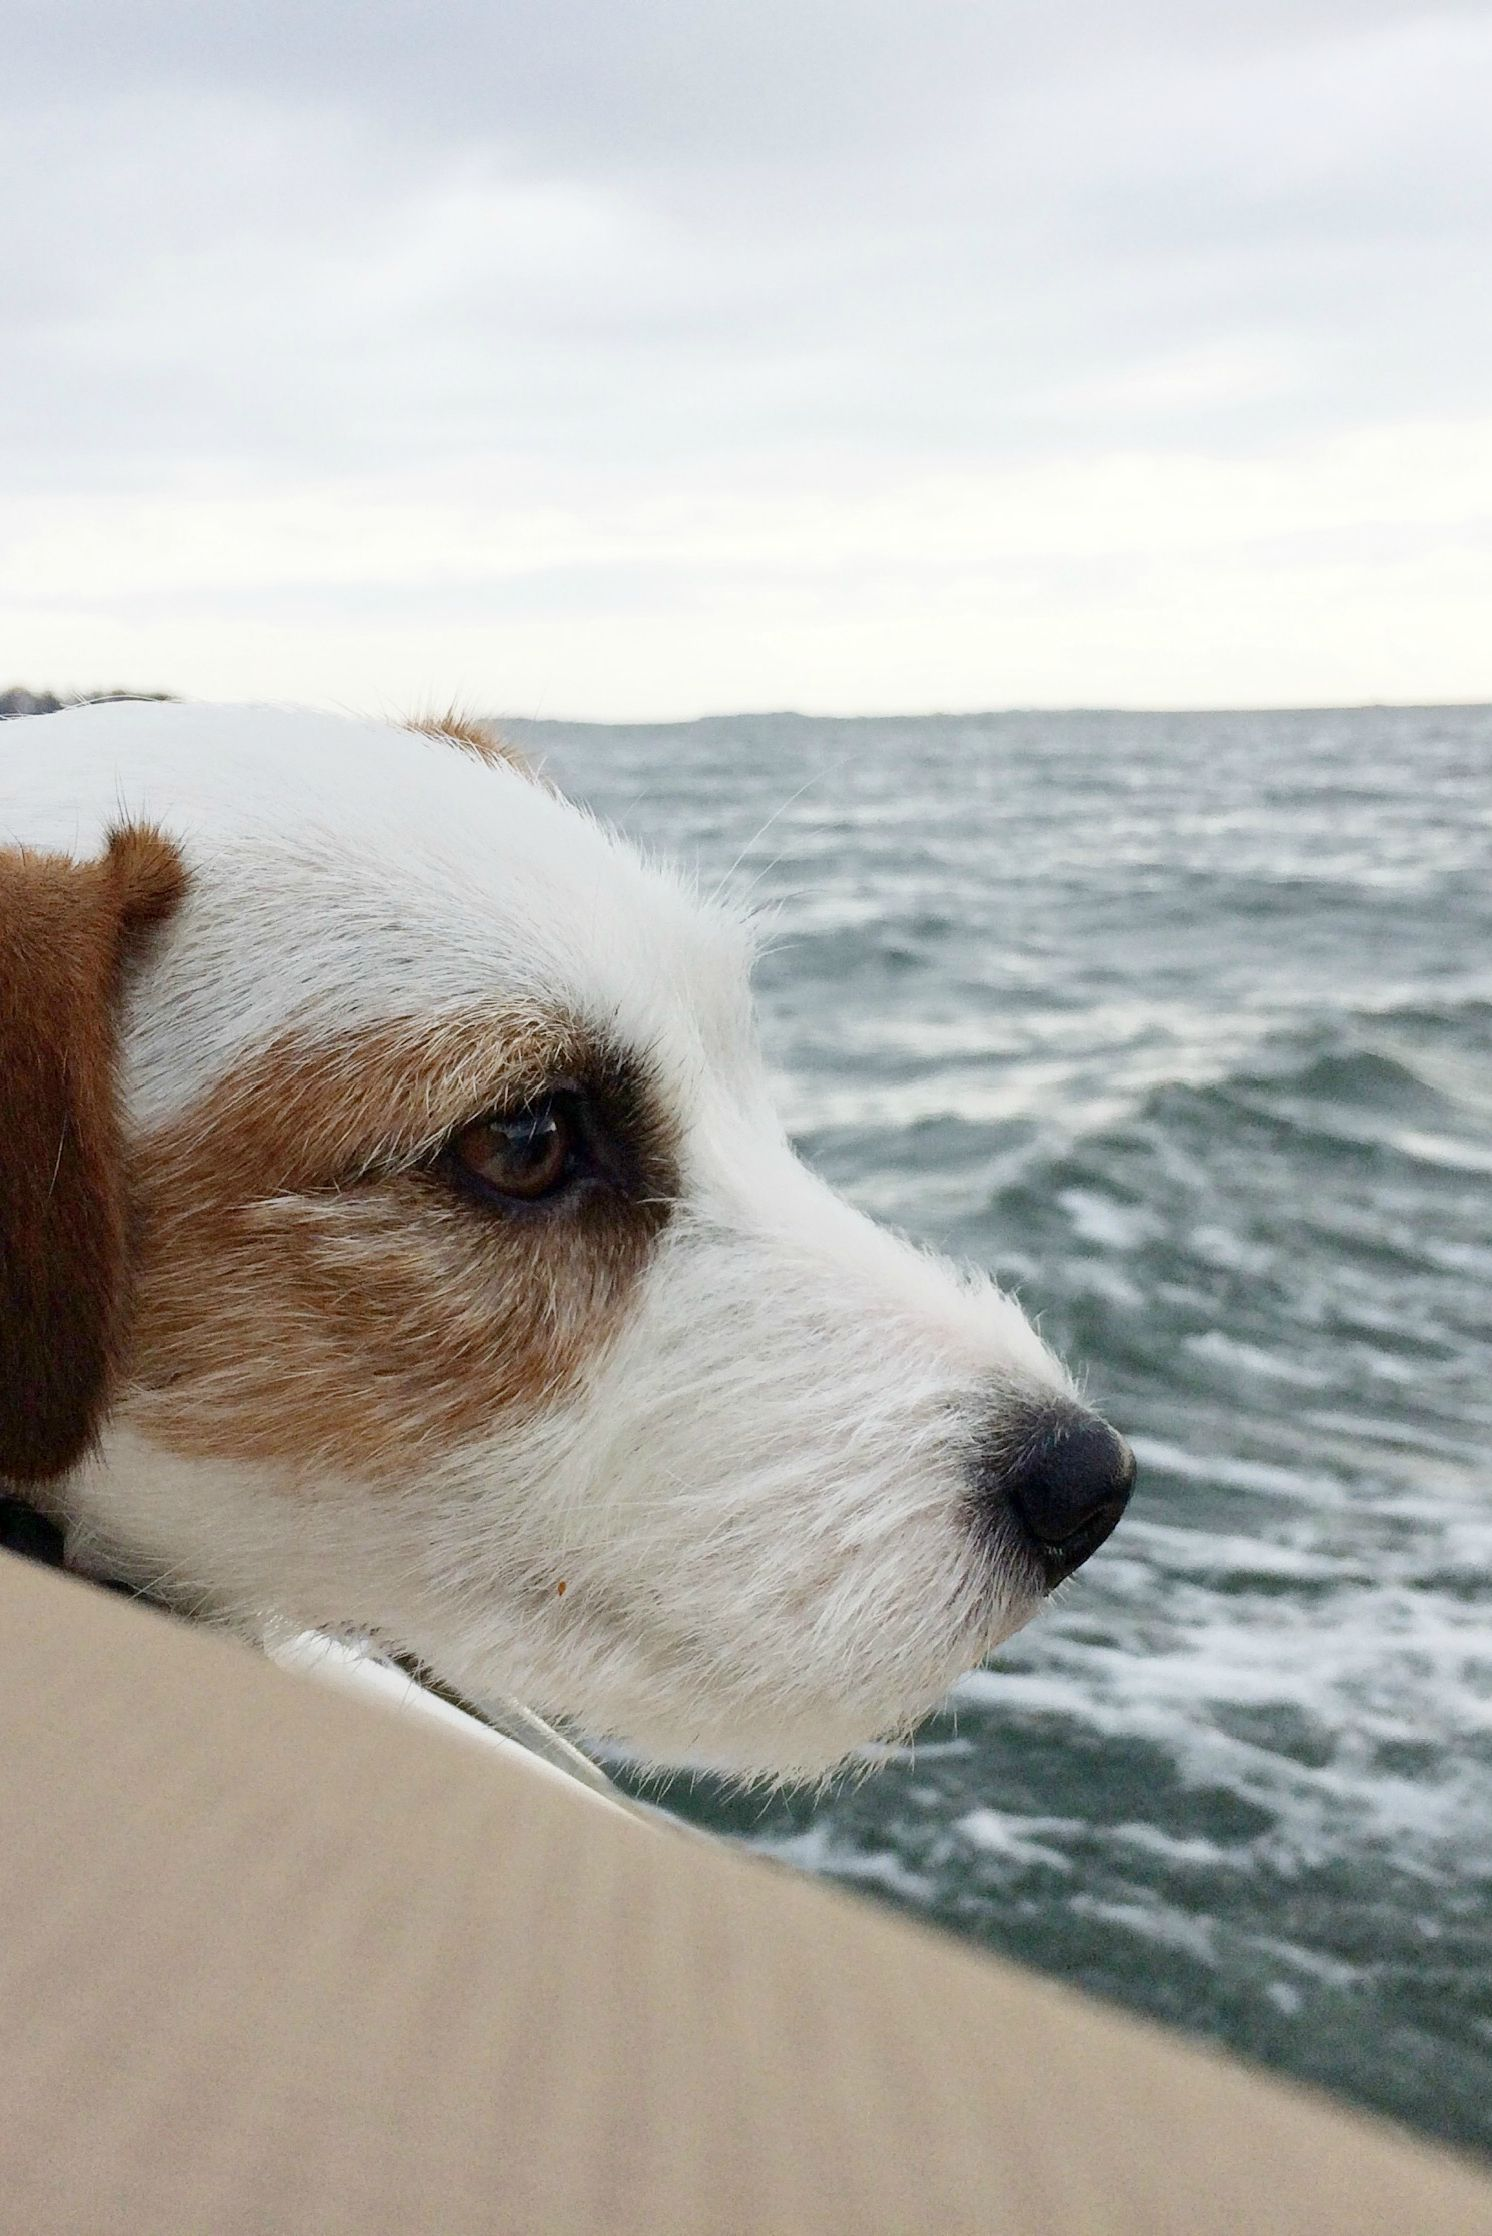 Sailor Dog On A Boat Jrt Puppy At The Sea Outdoor Adventures With